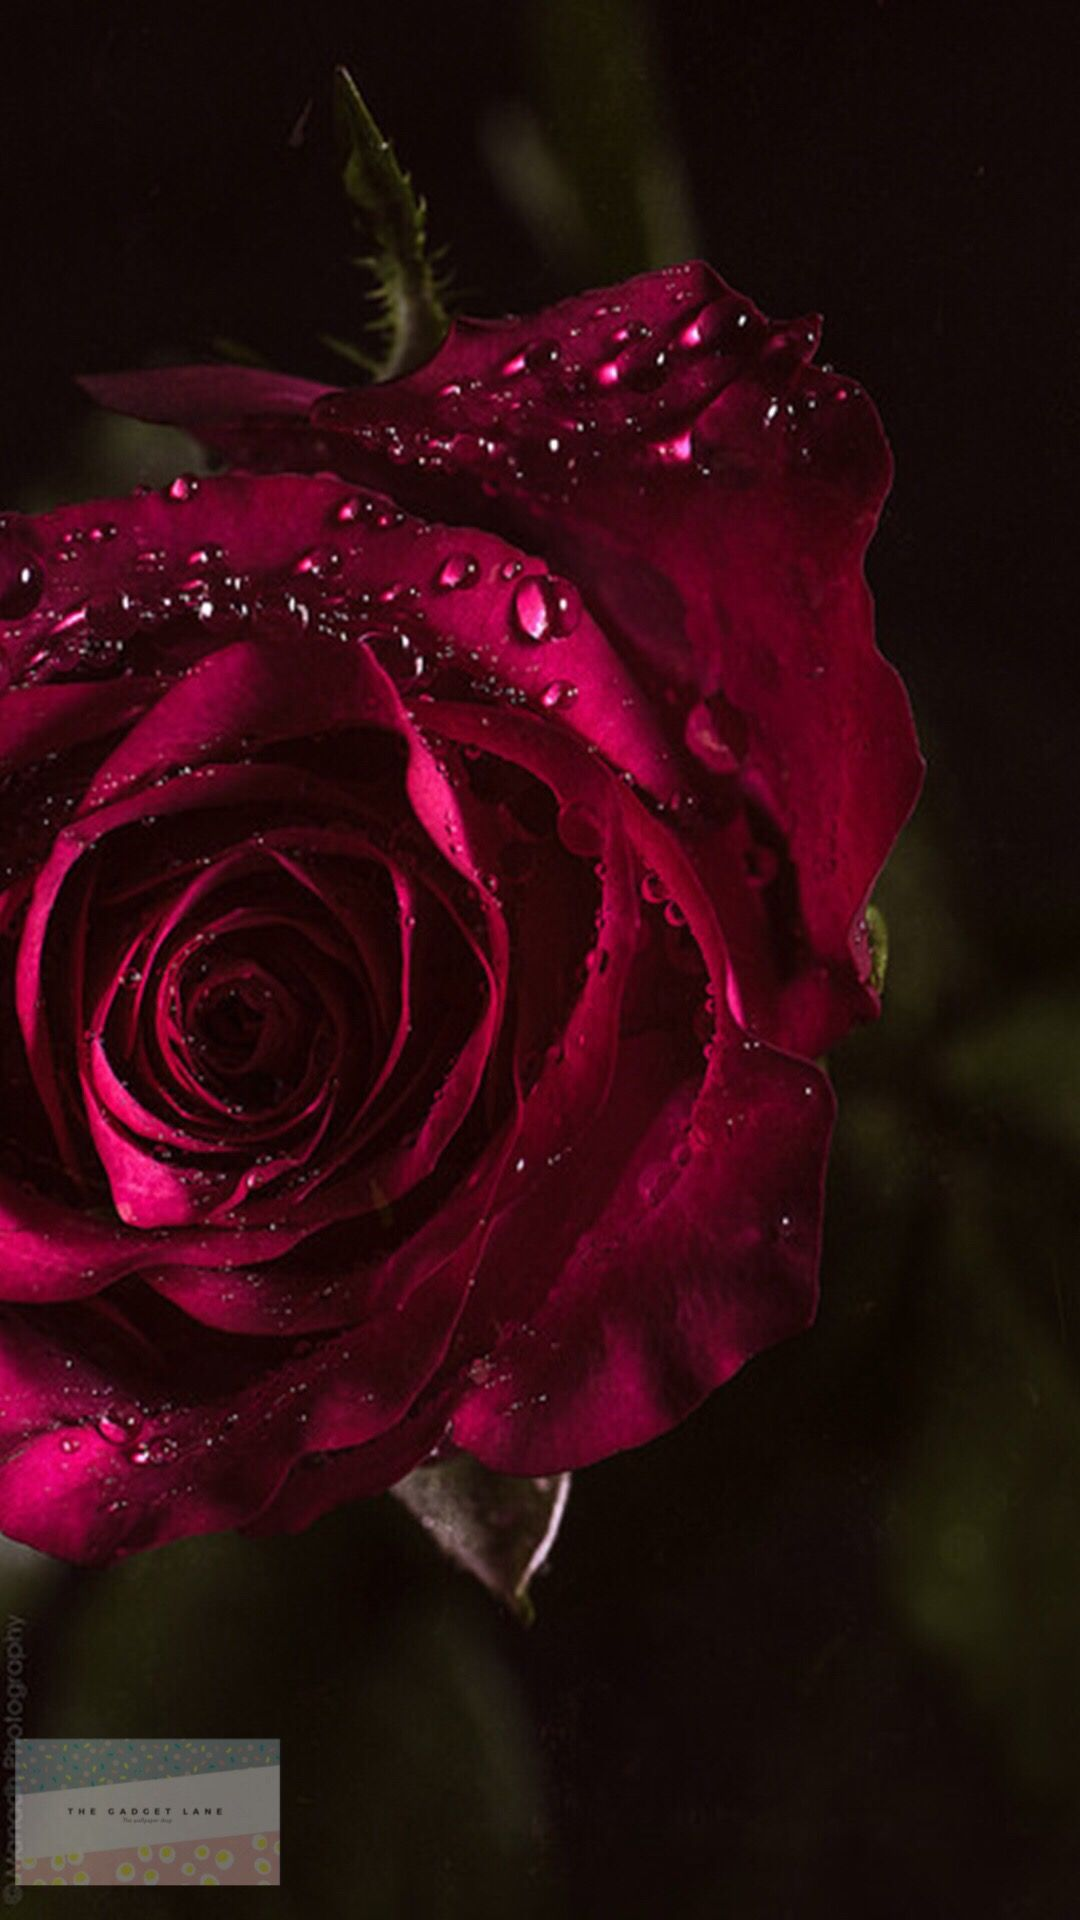 Black Theme Wallpaper Iphone Android Beautiful Roses Red Roses Beautiful Flowers